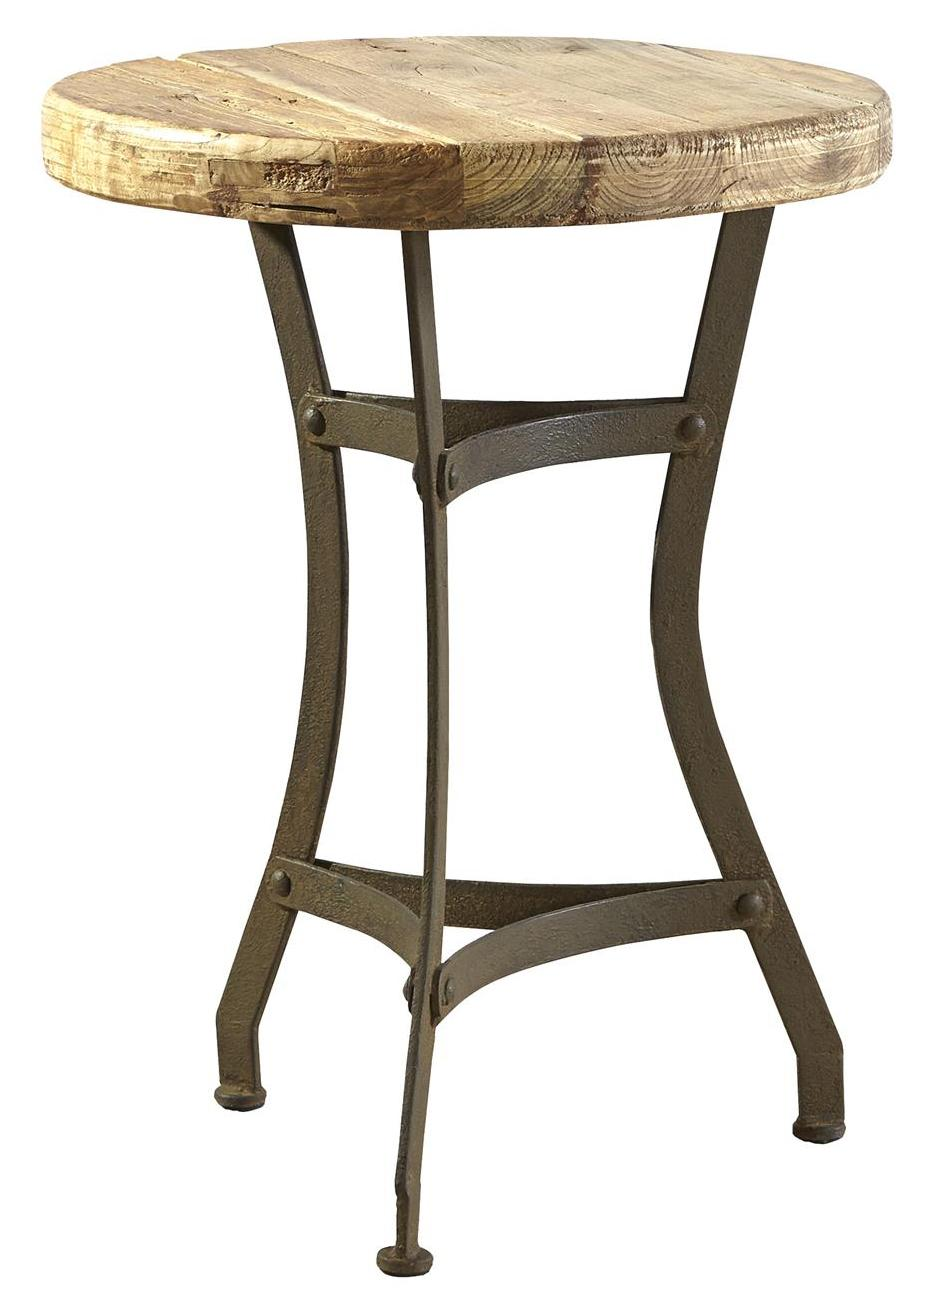 Furniture Classics Accents Recycled Tripod Table - Item Number: 72161WA